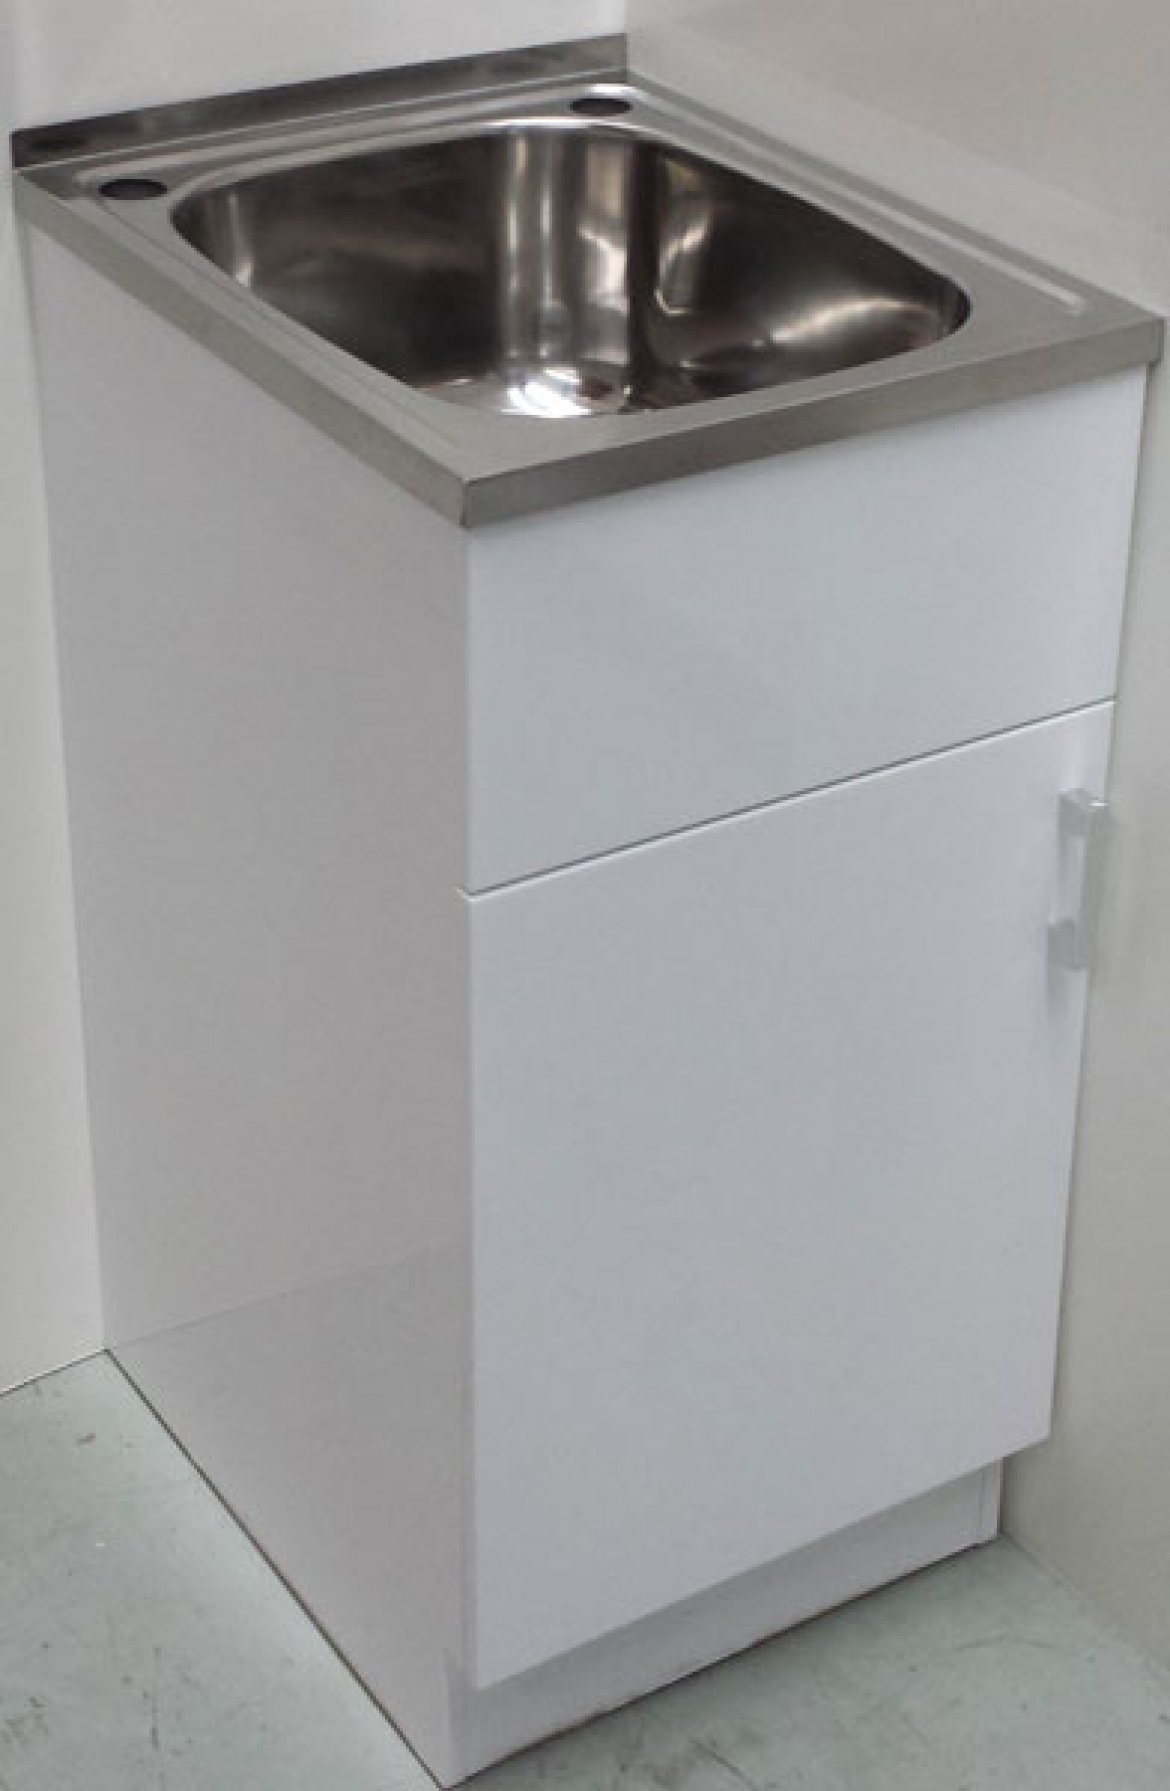 35L laundry sink with cabinet [ 1 door]